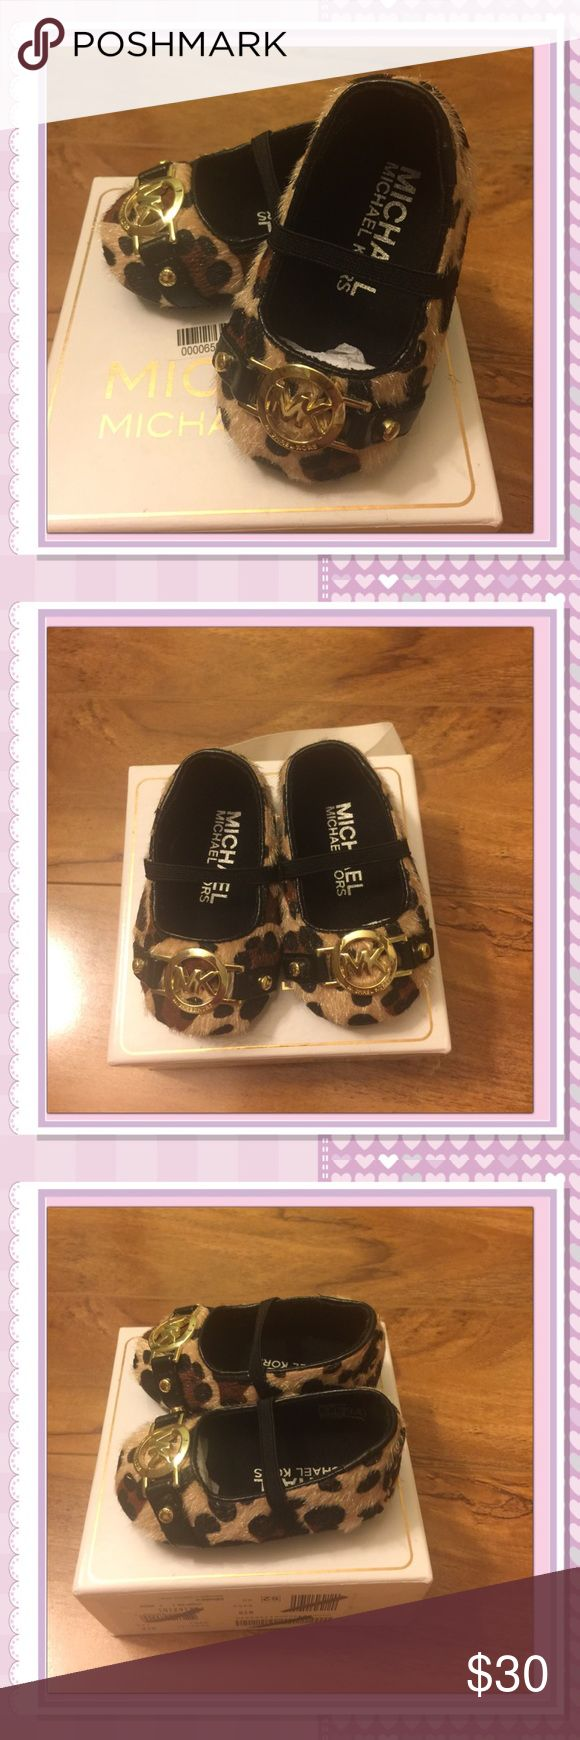 MK BABY MARA GIA CRIB SHOES SUPER ADORABLE CHEETAH PRINT BABY SHOES FOR THAT LITTLE FASHIONISTA BRAND NEW IN BOX SIZE 2 FOR 3-6 MONTHS Michael Kors Shoes Baby & Walker